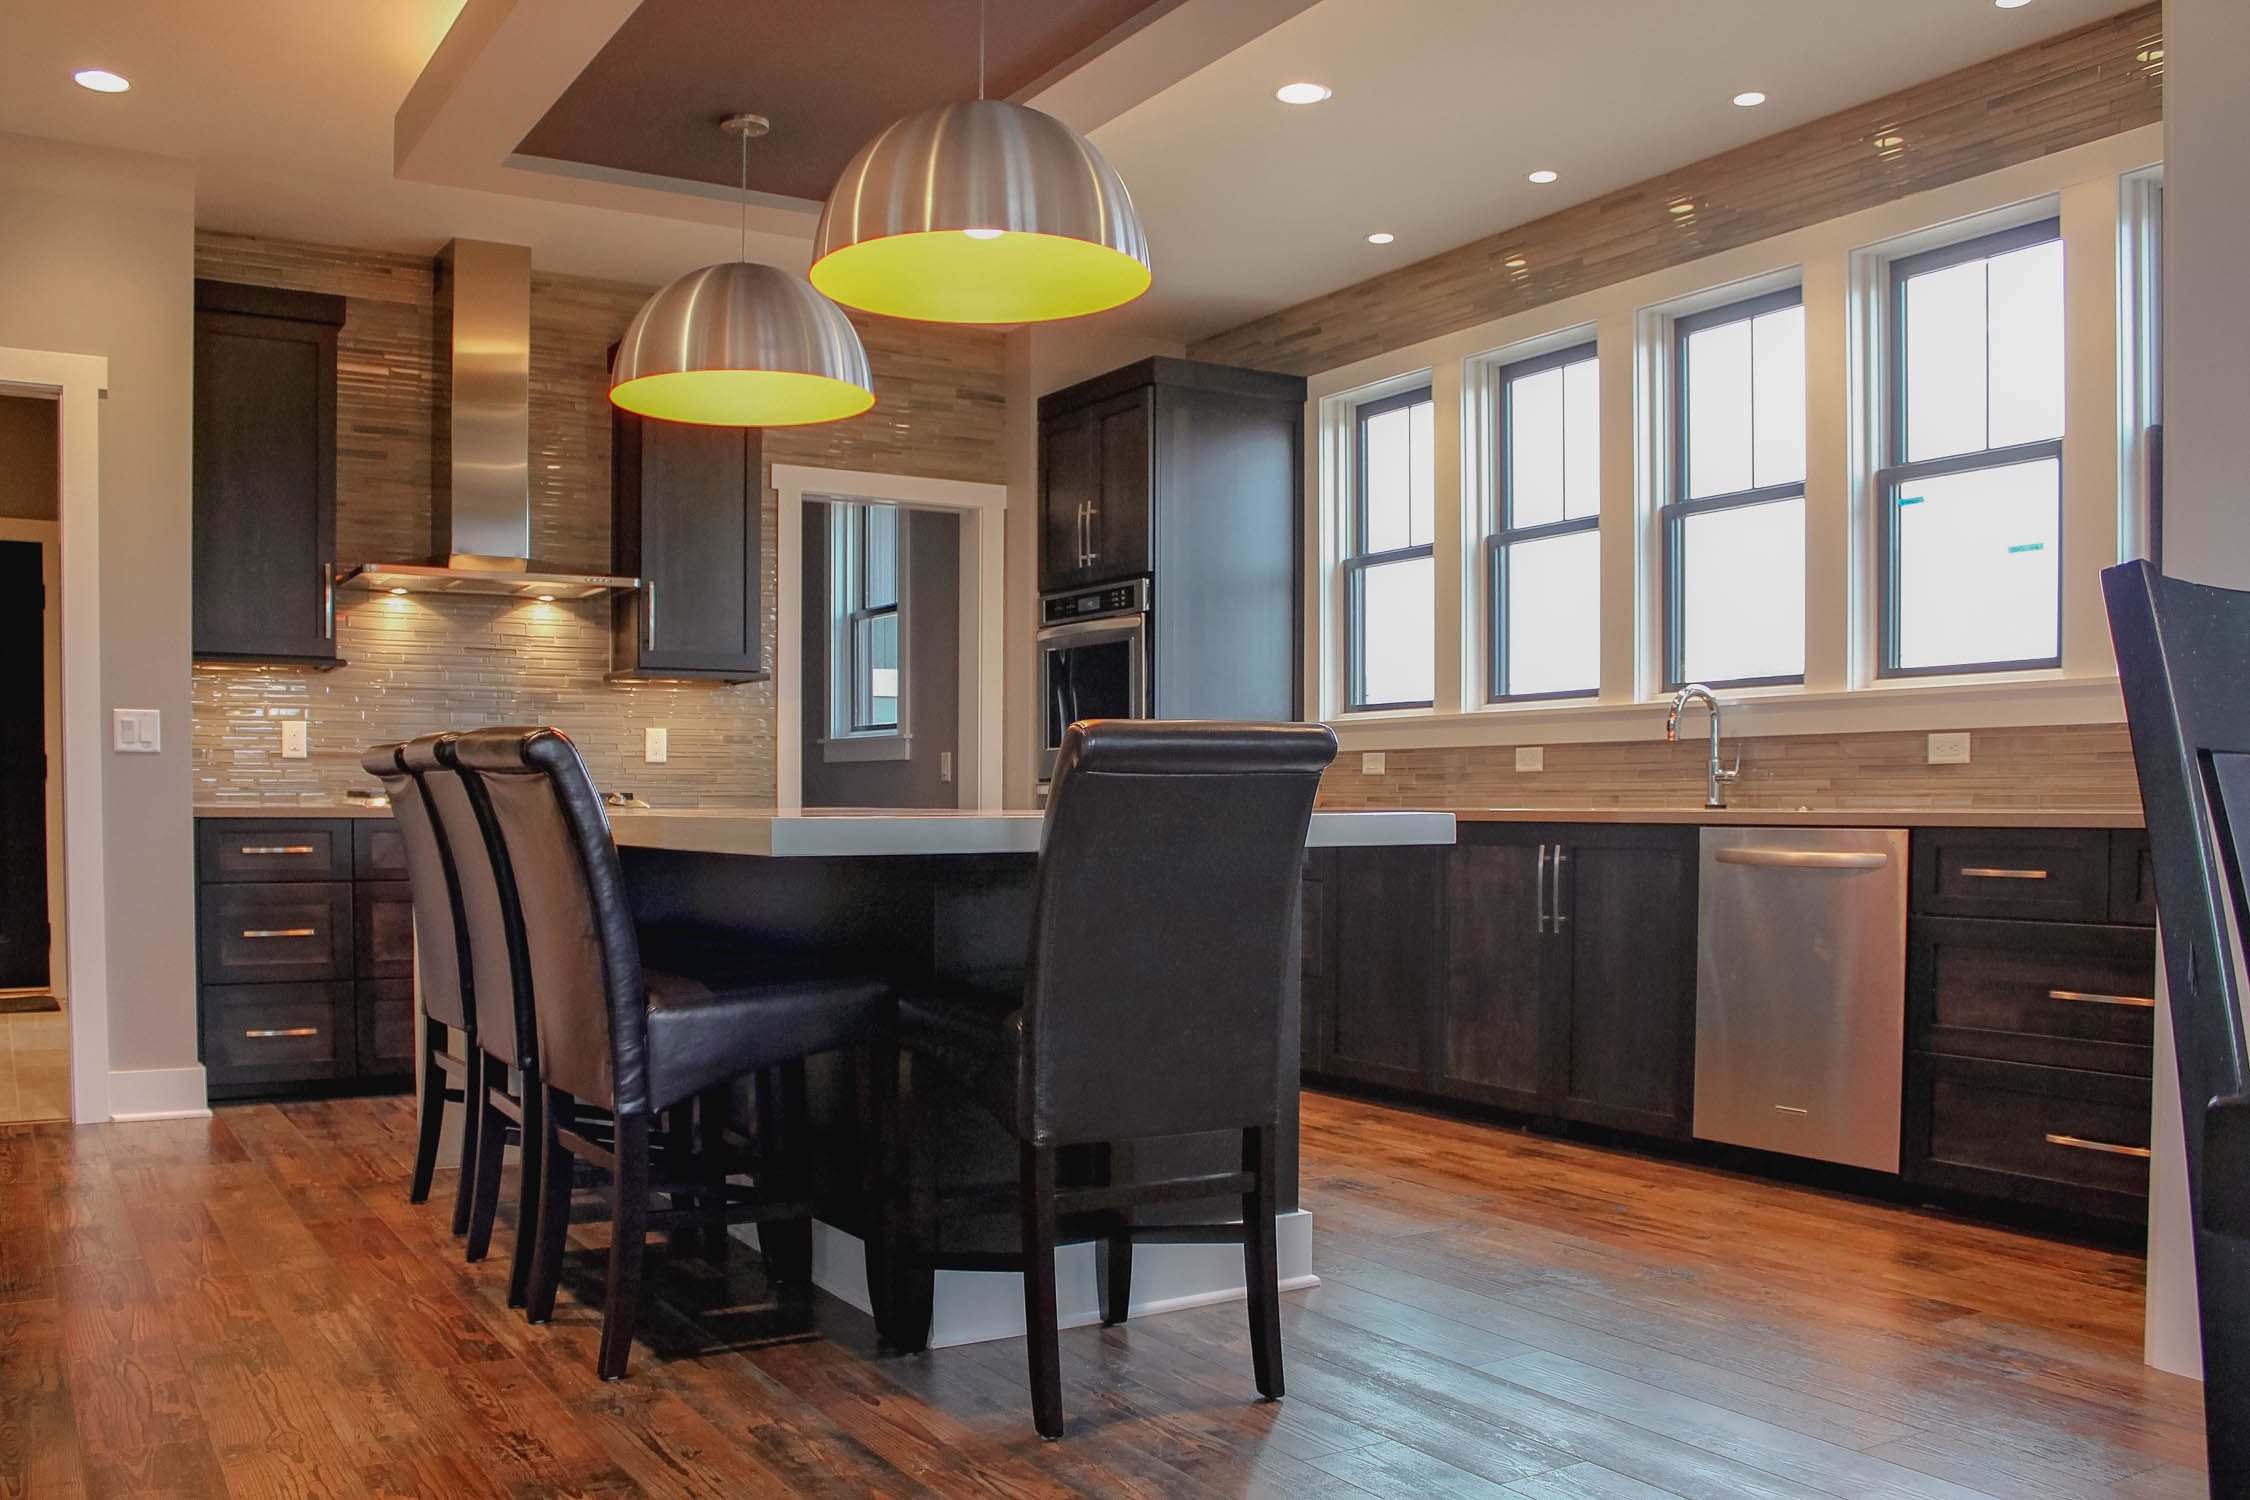 Why You Should Consider Using Recessed Lighting In a ...